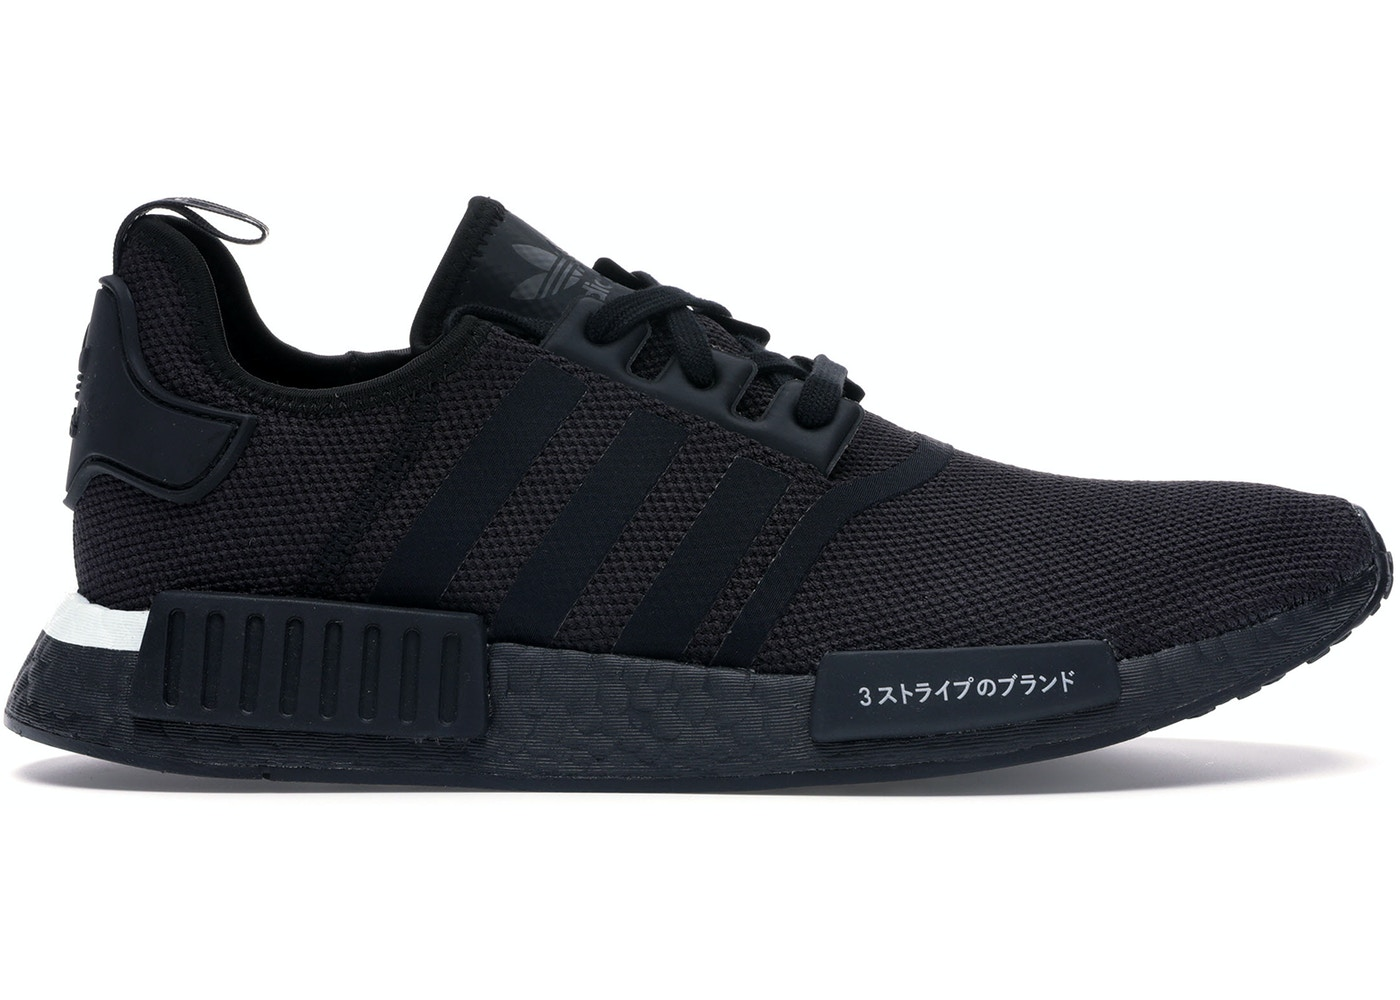 Adidas Nmd R1 Japan Black 2019 Bd7754